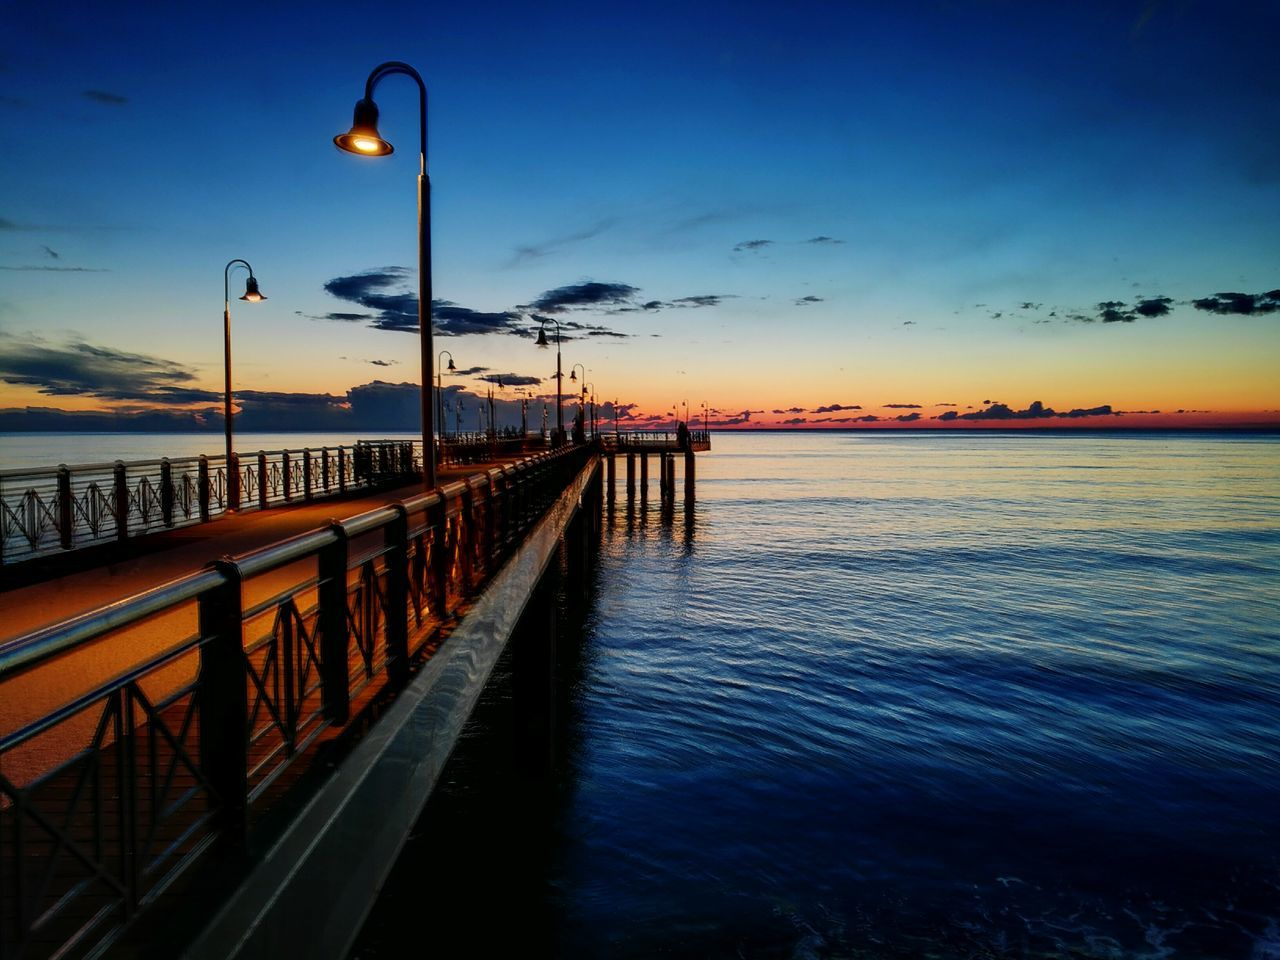 sea, sunset, water, sky, street light, nature, tranquil scene, lighting equipment, outdoors, beauty in nature, scenics, cloud - sky, tranquility, horizon over water, blue, illuminated, no people, built structure, travel destinations, architecture, day